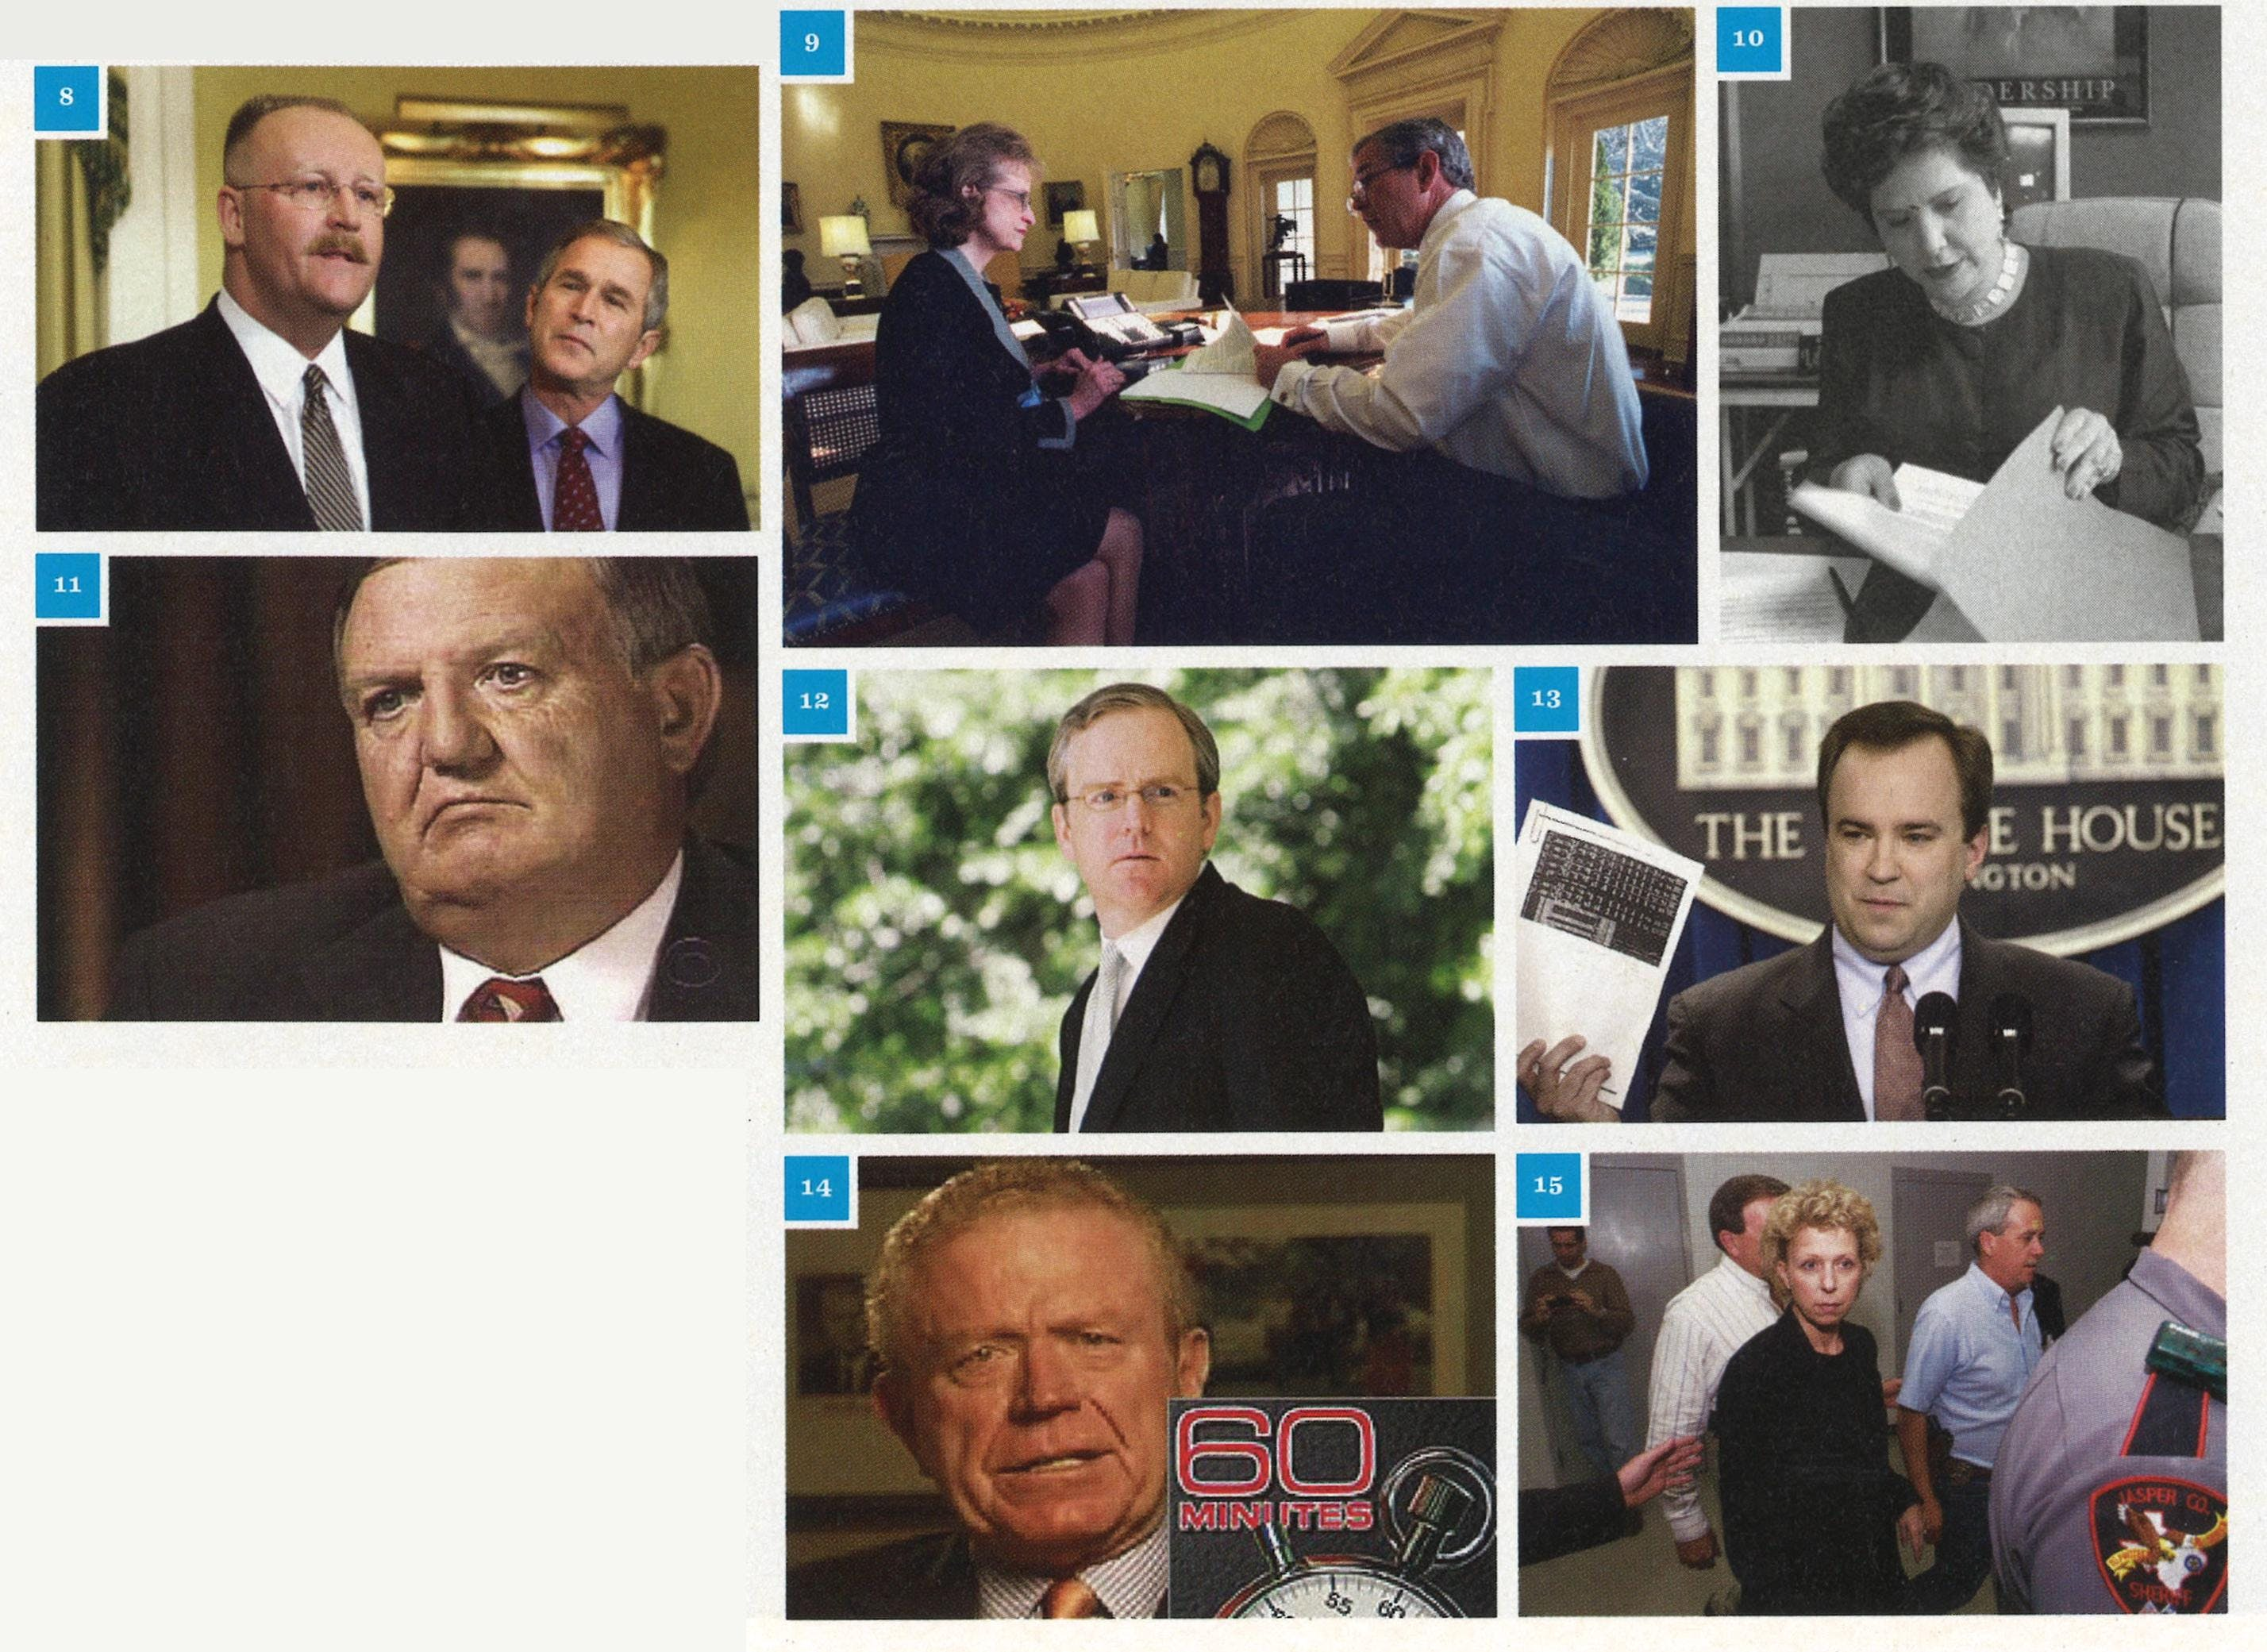 8. Bush and Joe Allbaugh in 2001. 9. Bush in the Oval Office with Harriet Miers in 2001. 10. Nora Linares at the Texas Lottery Commission in 1993. 11. Bill Burkett. 13. Dan Bartlett at the White House in 2007. 13. Scott McClellan presenting new Bush military documents in 2004. 14. Barnes on 60 Minutes in 2004. 15. Mary Mapes in 1999.